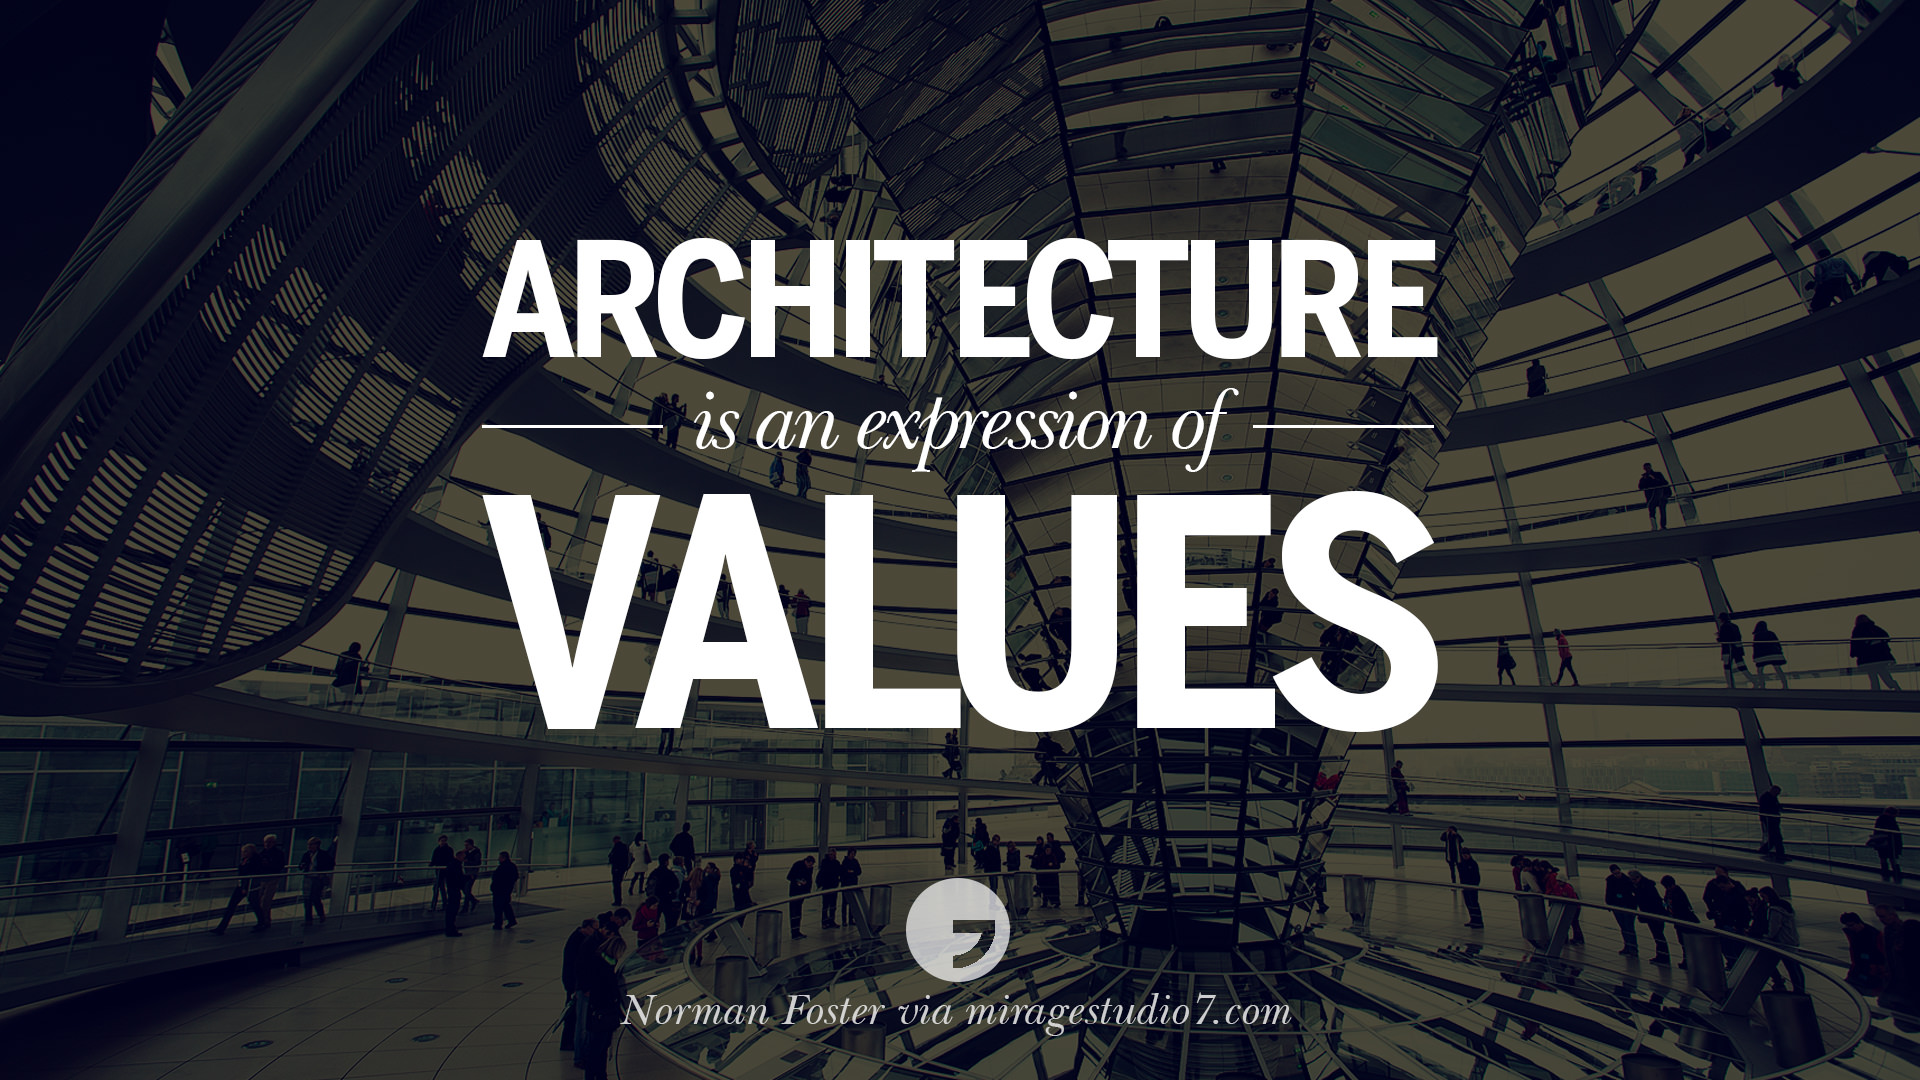 28 Inspirational Architecture Quotes by Famous Architects